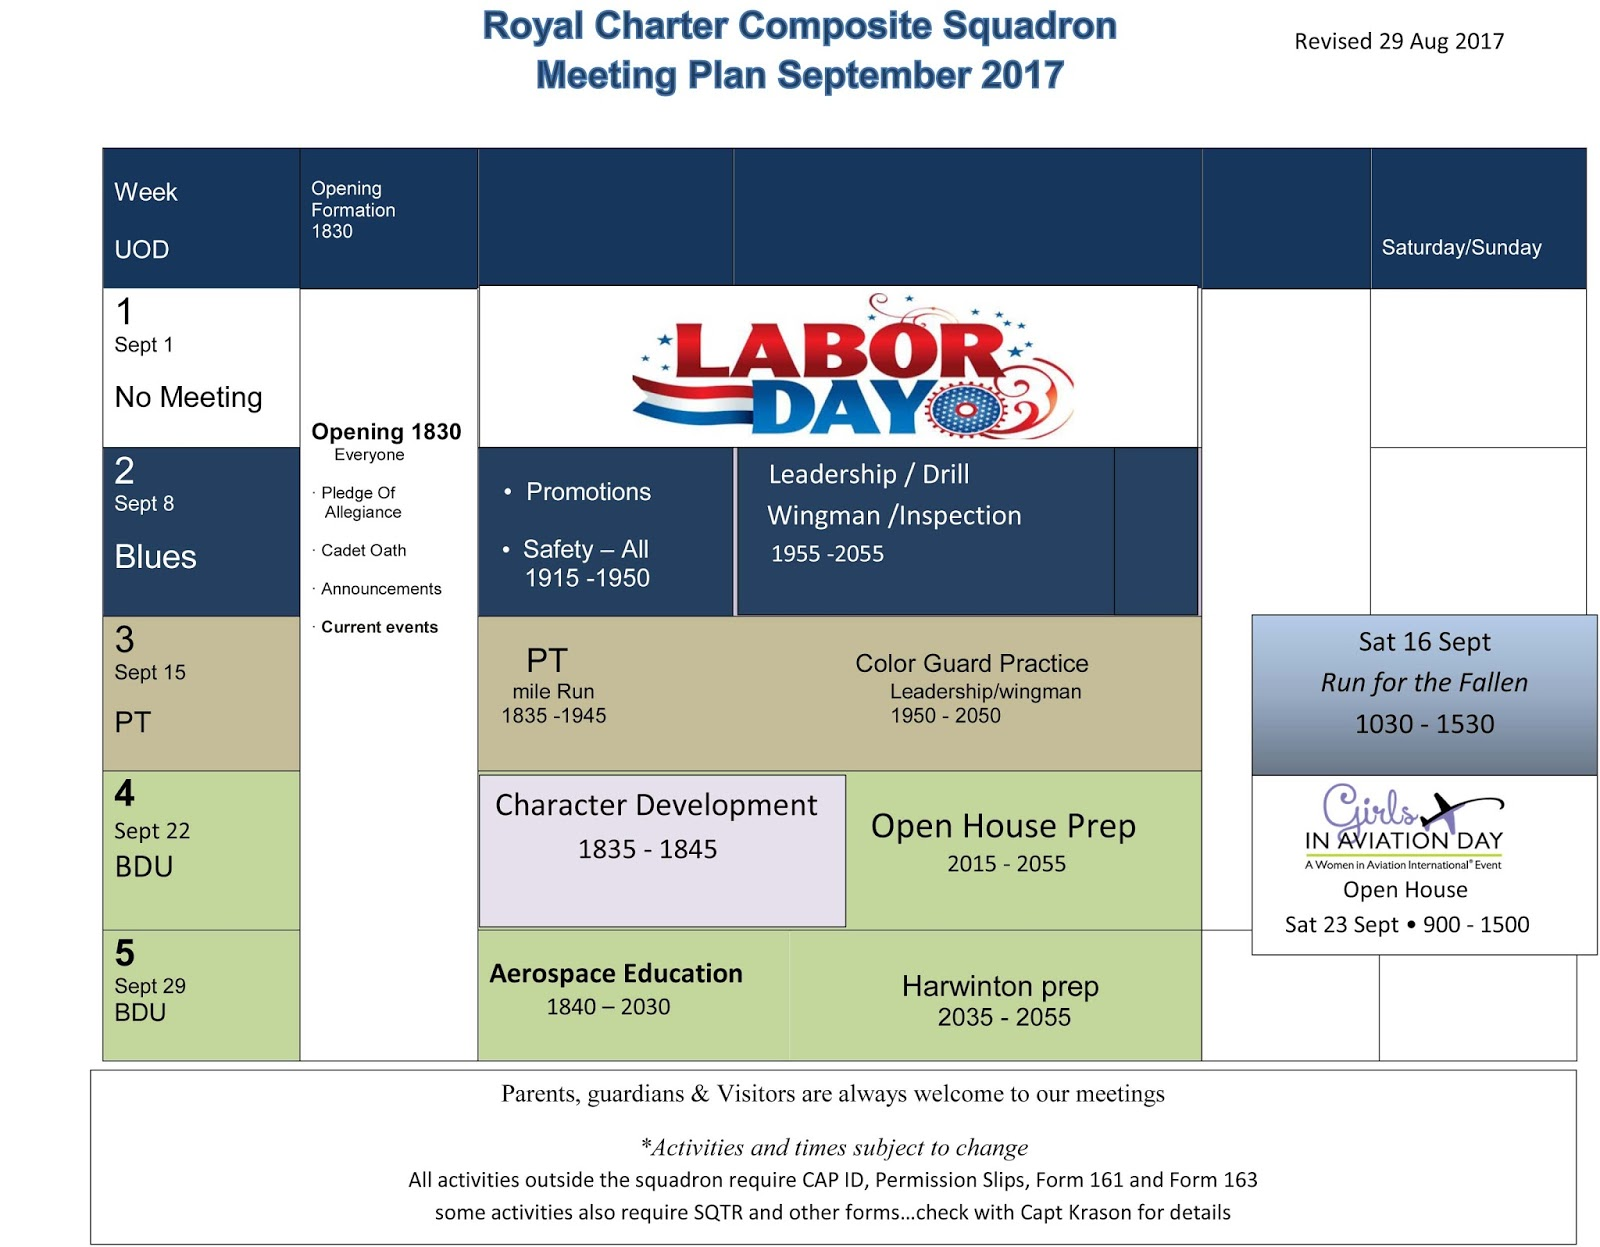 Royal Charter Composite Squadron Monthly Squadron Meeting Plan